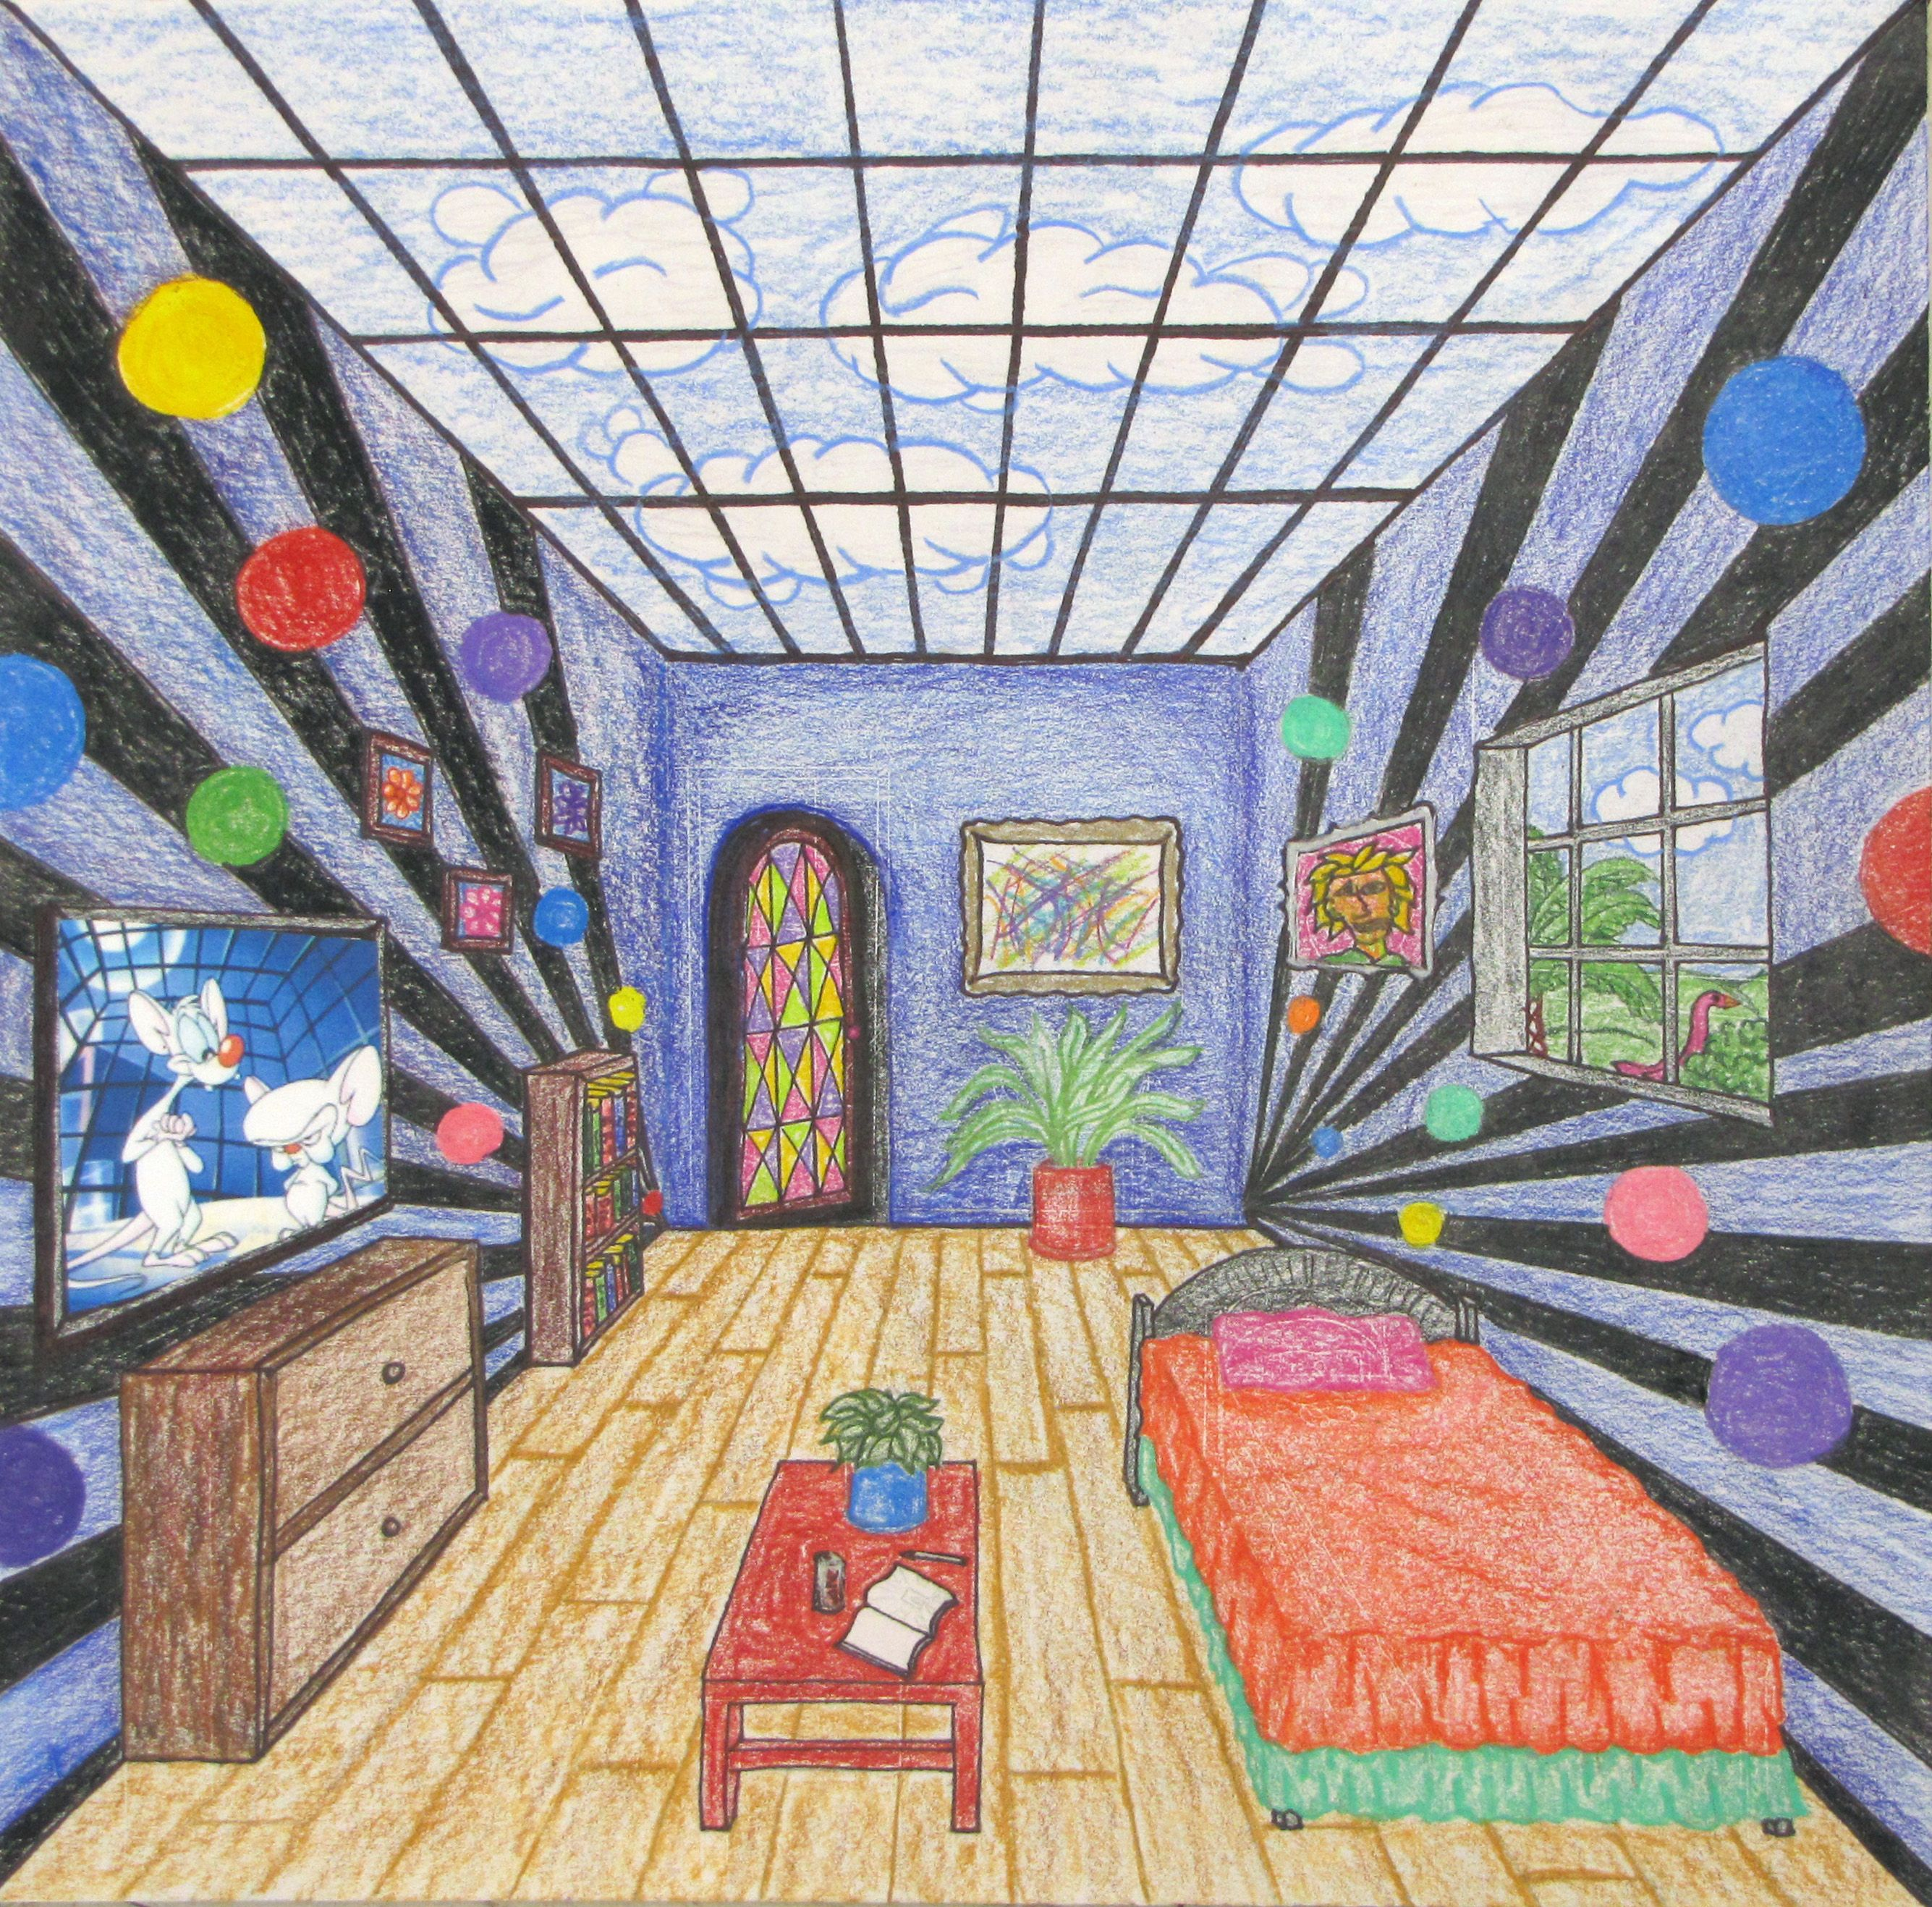 Fantasy Rooms In 1 Point Perspective Reminds Me Van Gogh